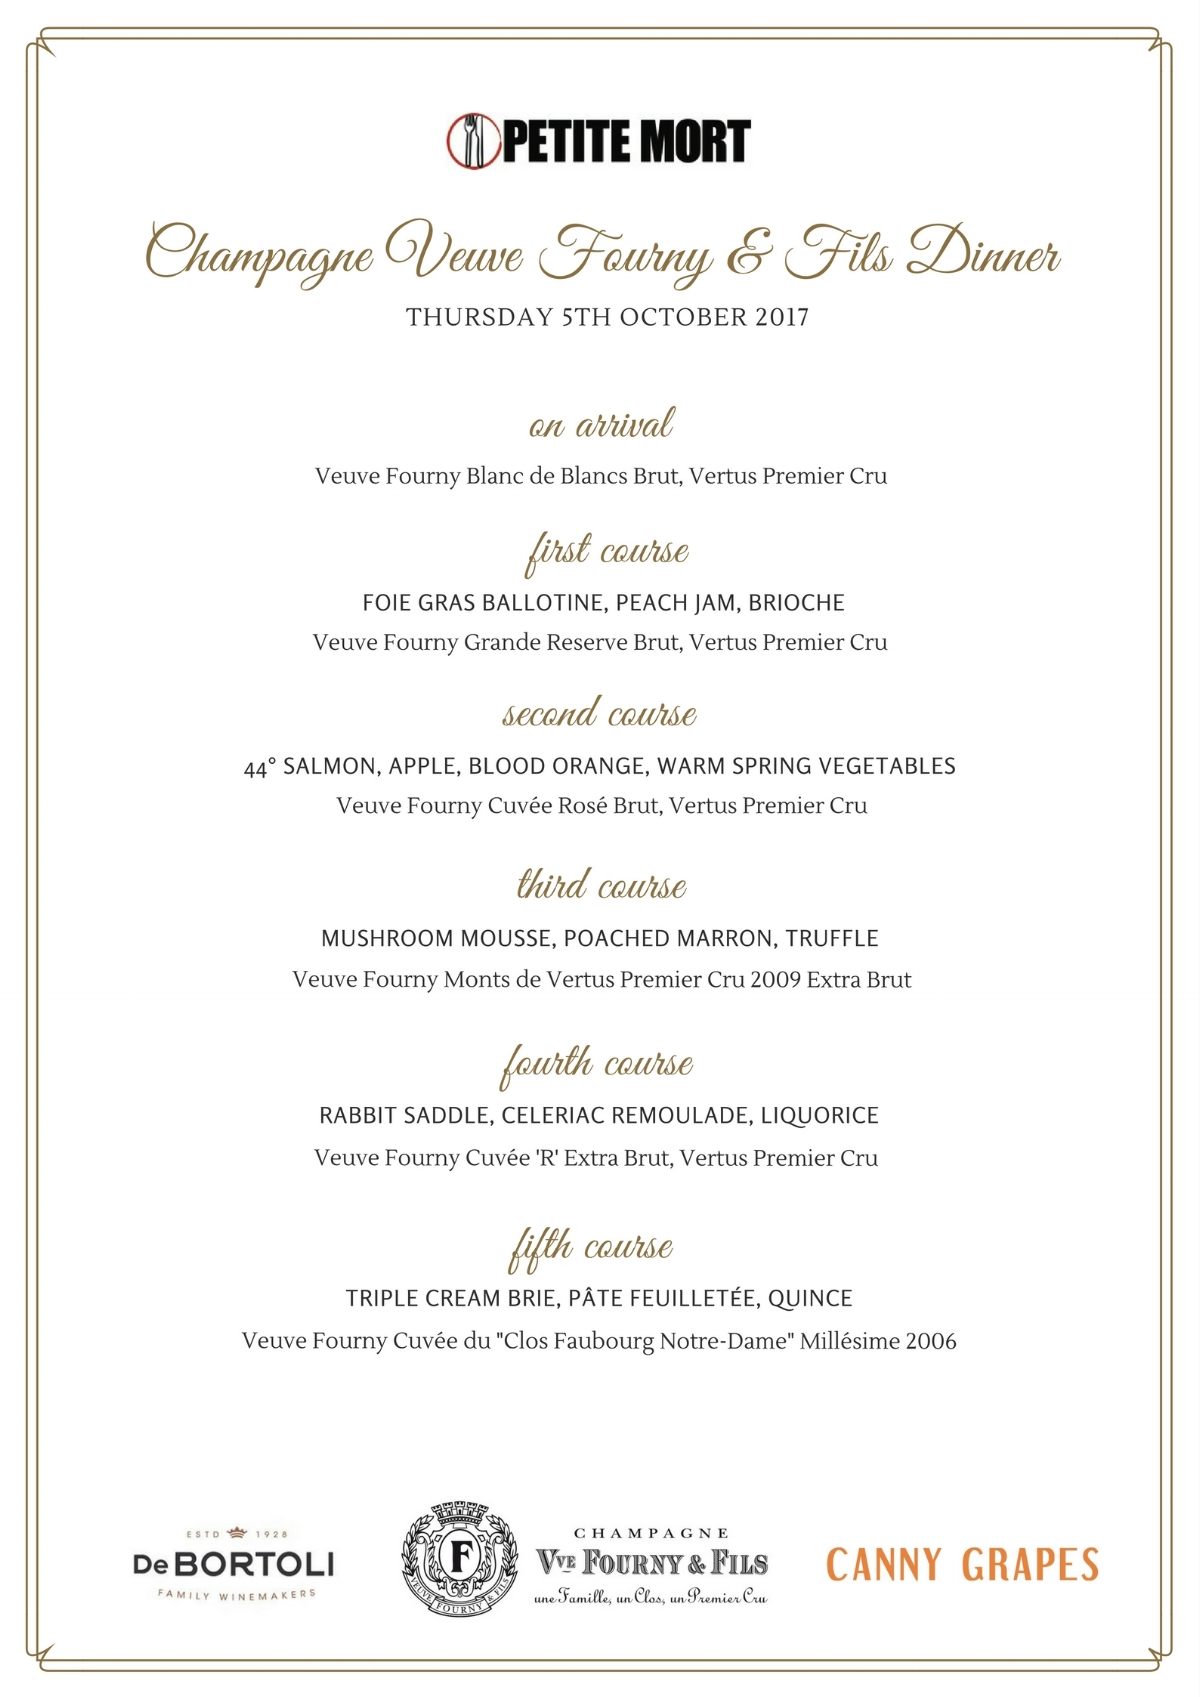 Veuve Fourny and Fils Dinner at Petite Mort